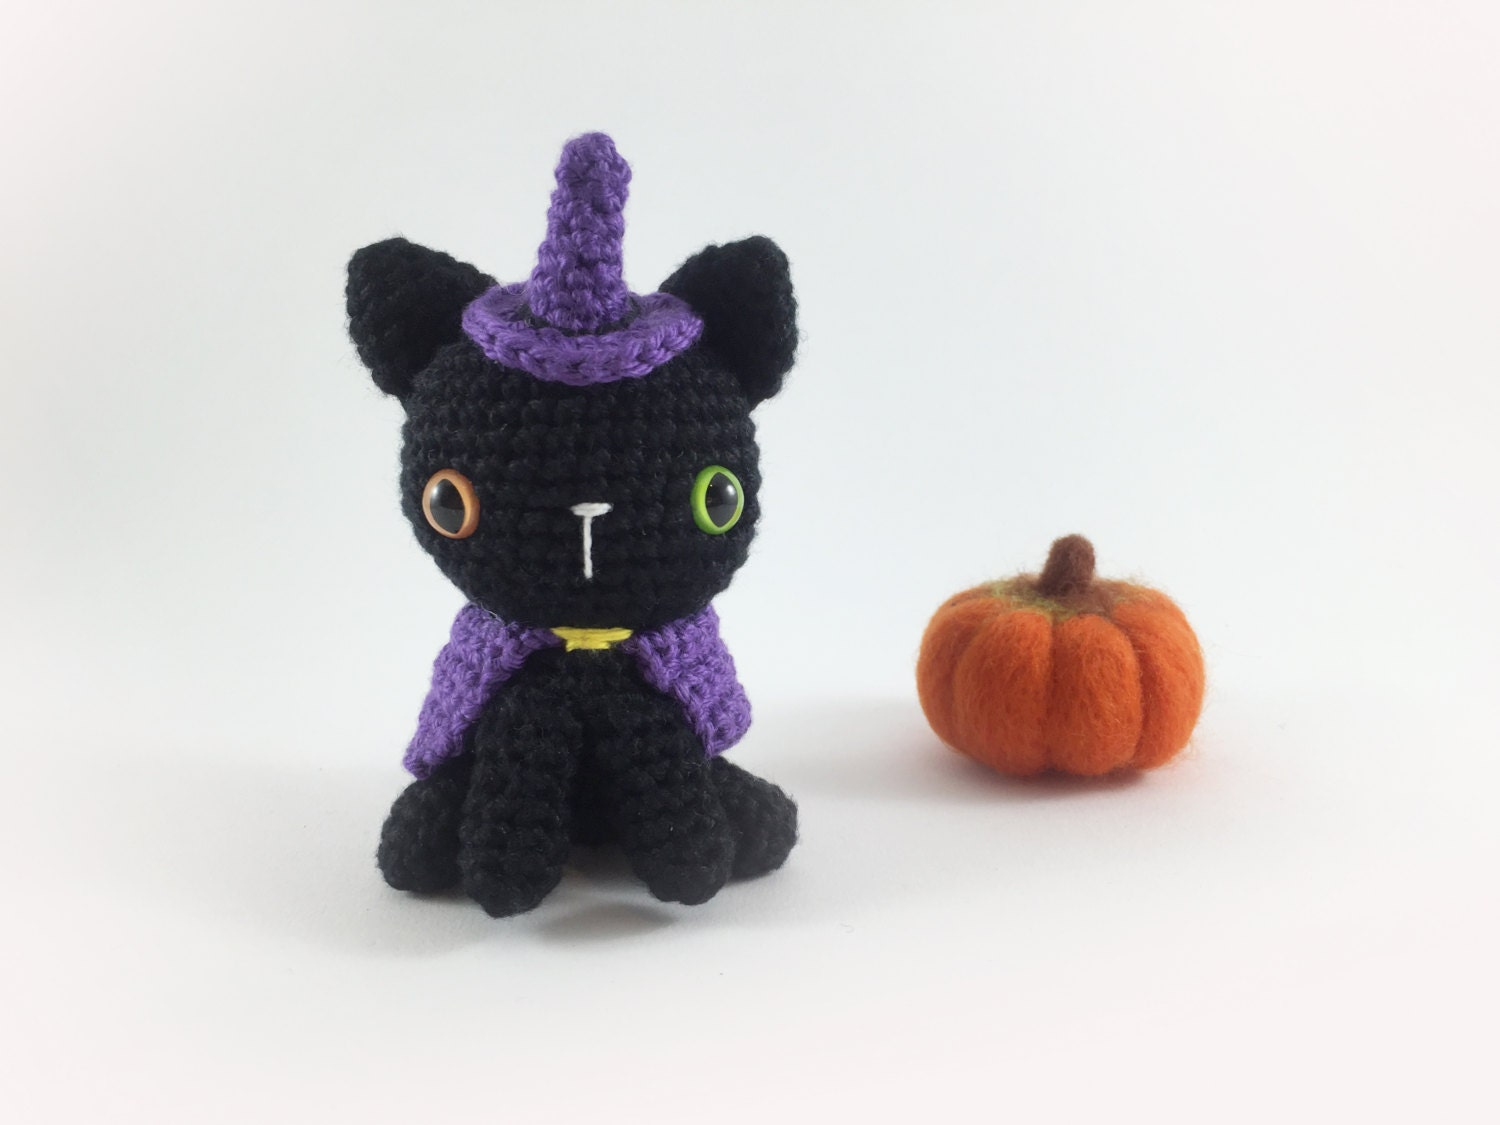 Crocheted Witch Kitty Crochet Witch Halloween Amigurumi